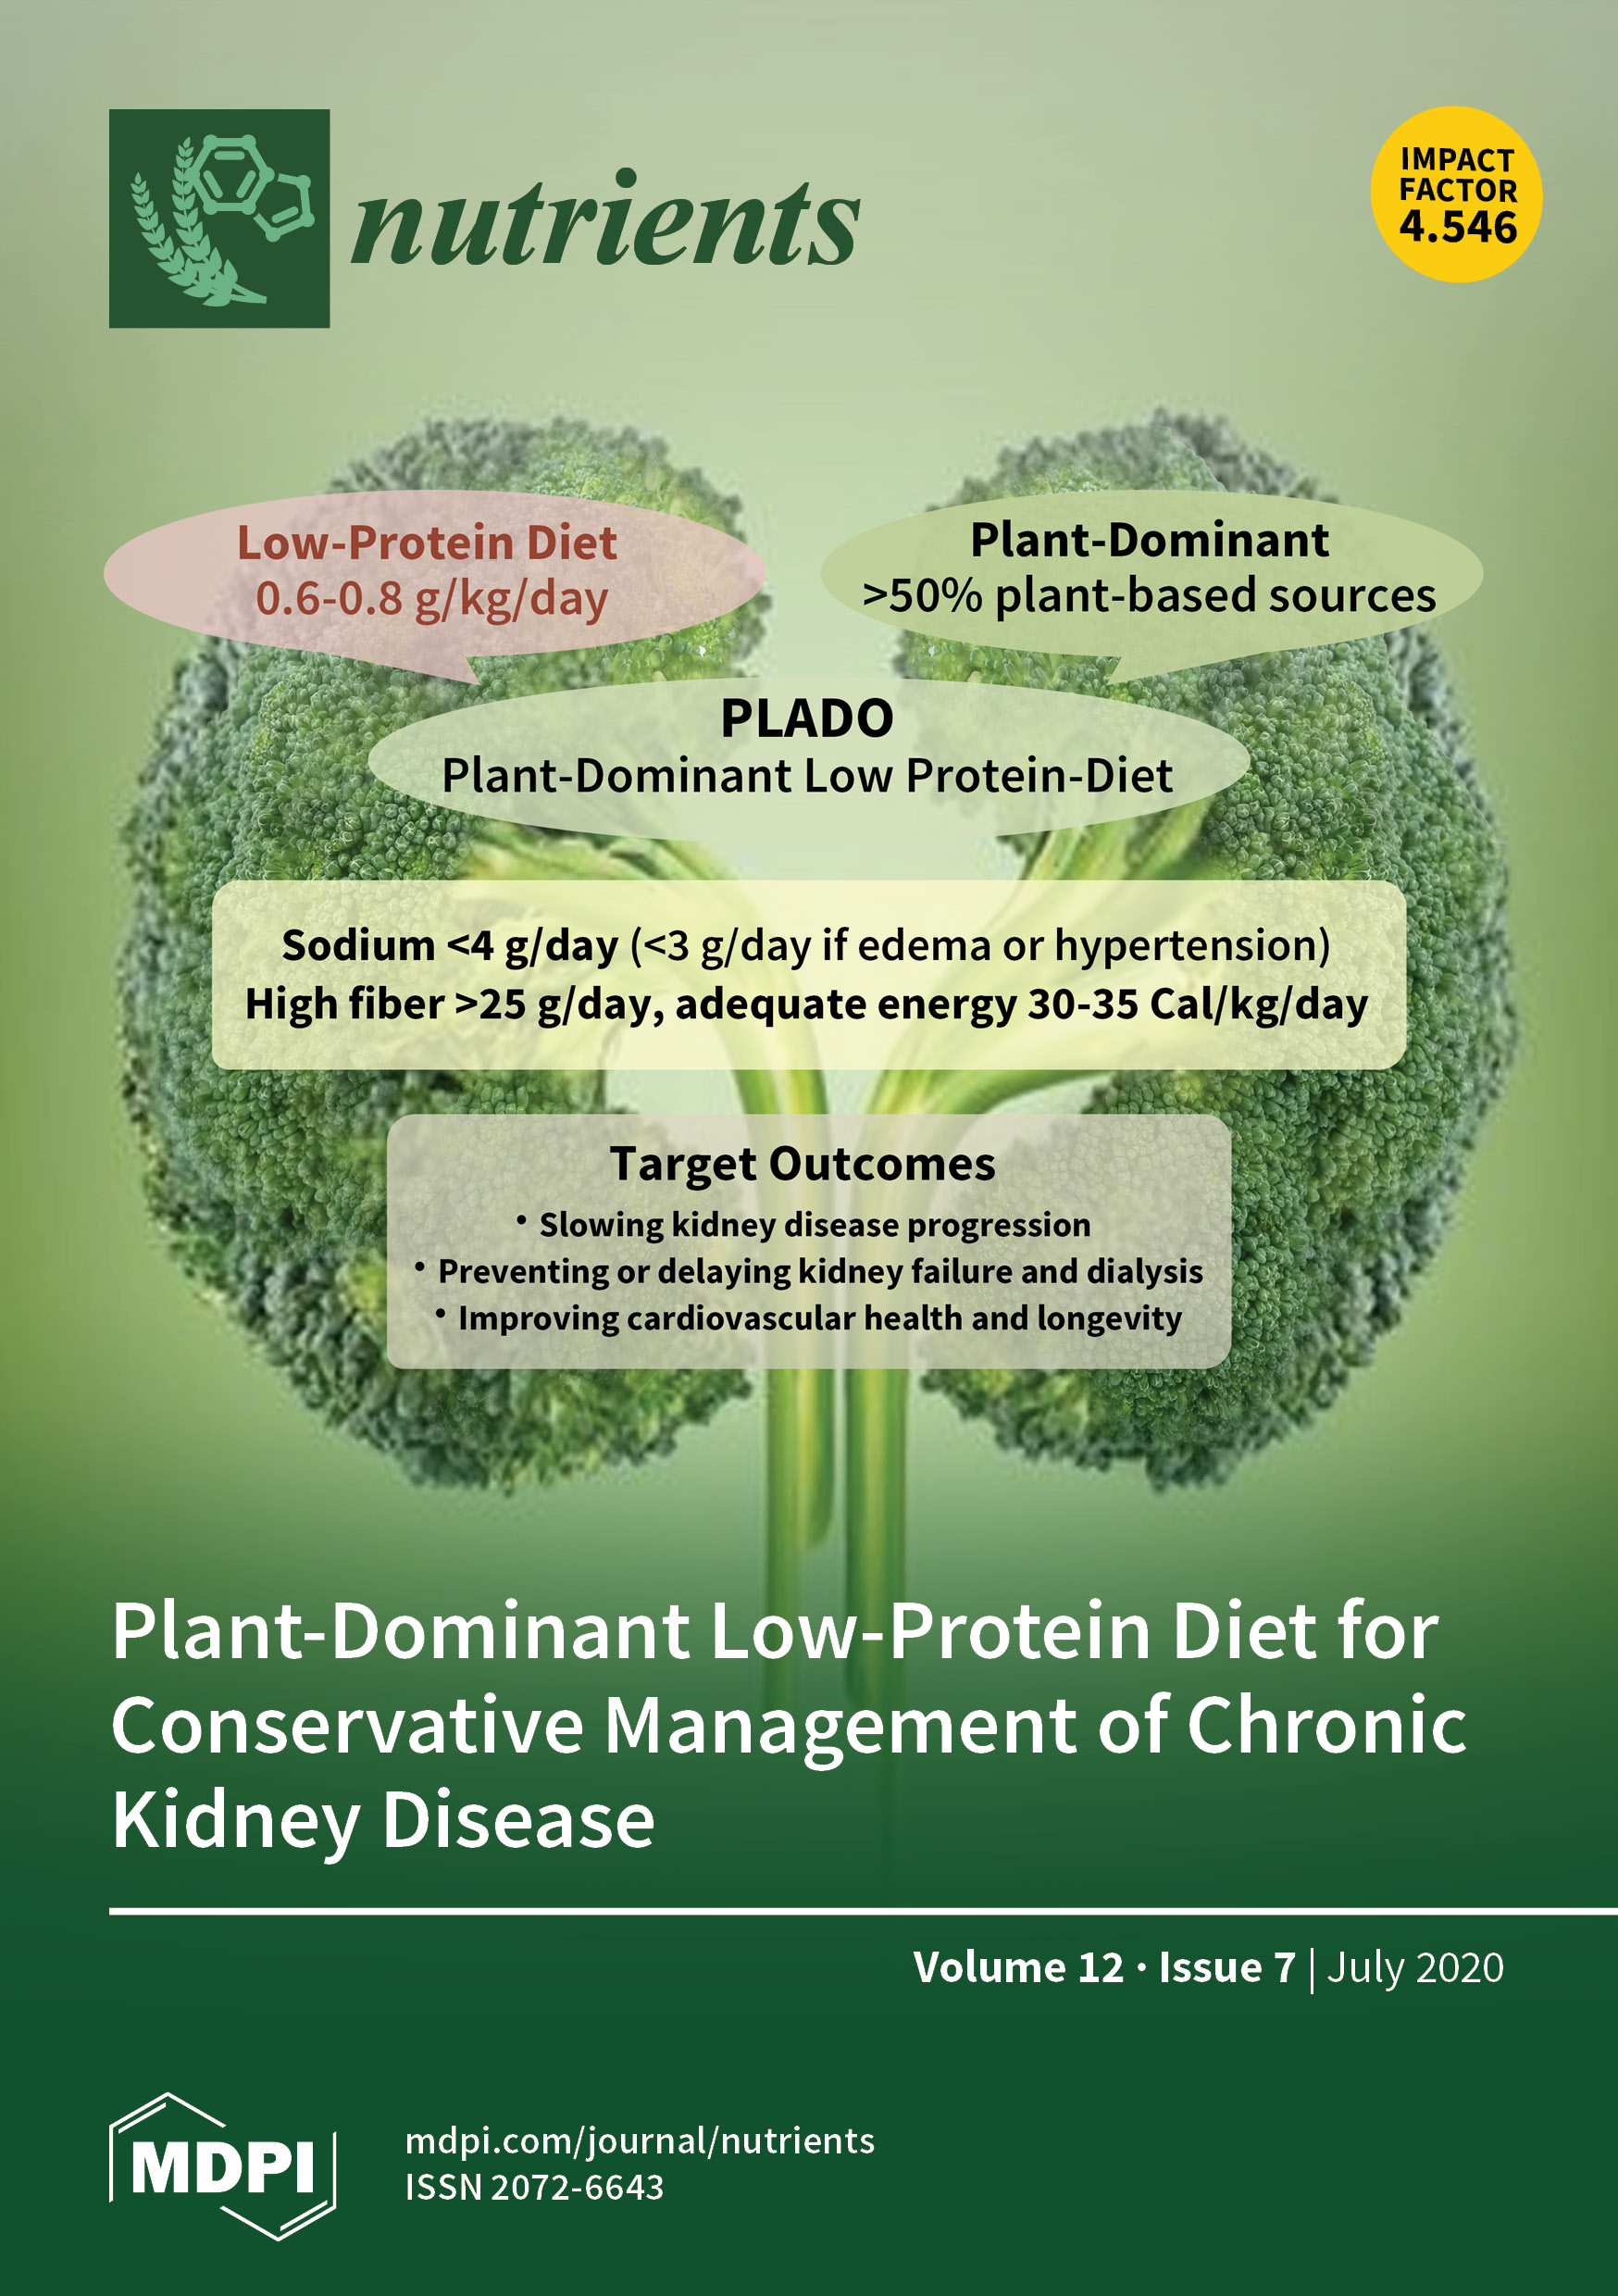 Nutrients July 2020 Browse Articles